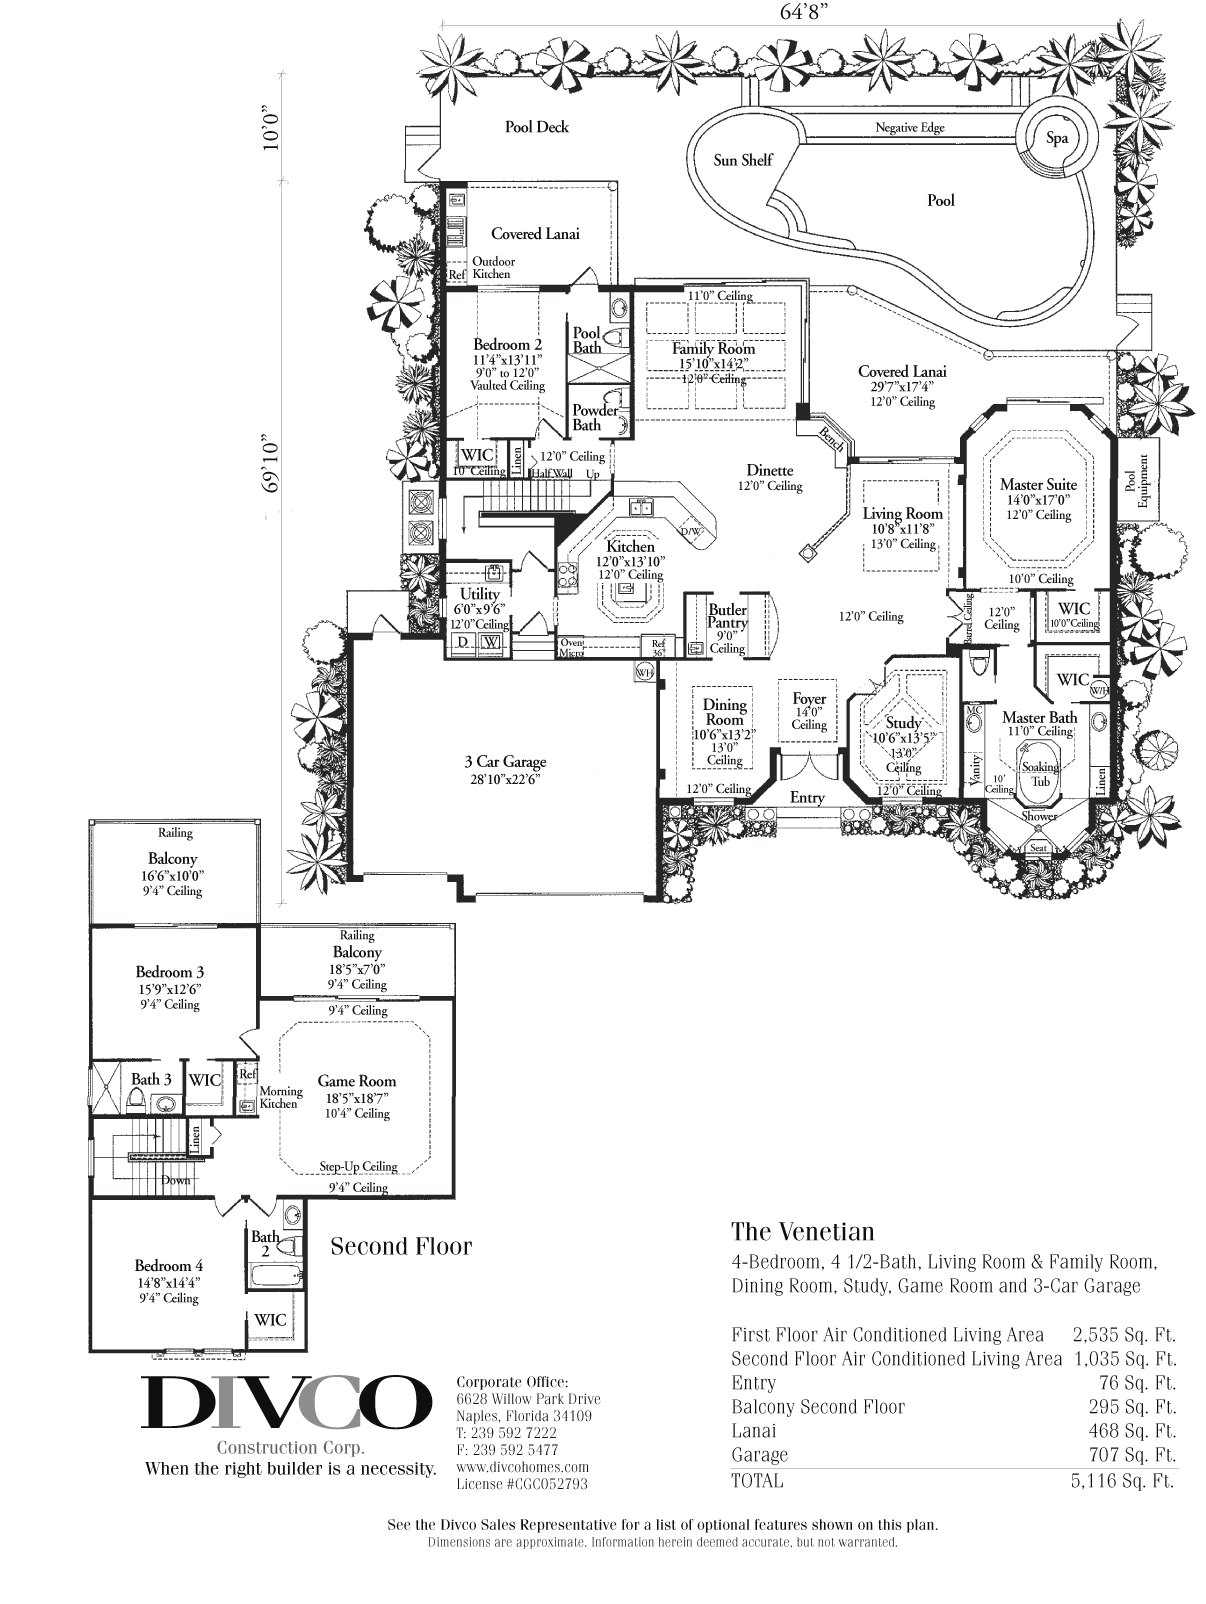 Home Floor Plans With Pictures Luxury Home Floor Plans Marco - Luxury home designs photos